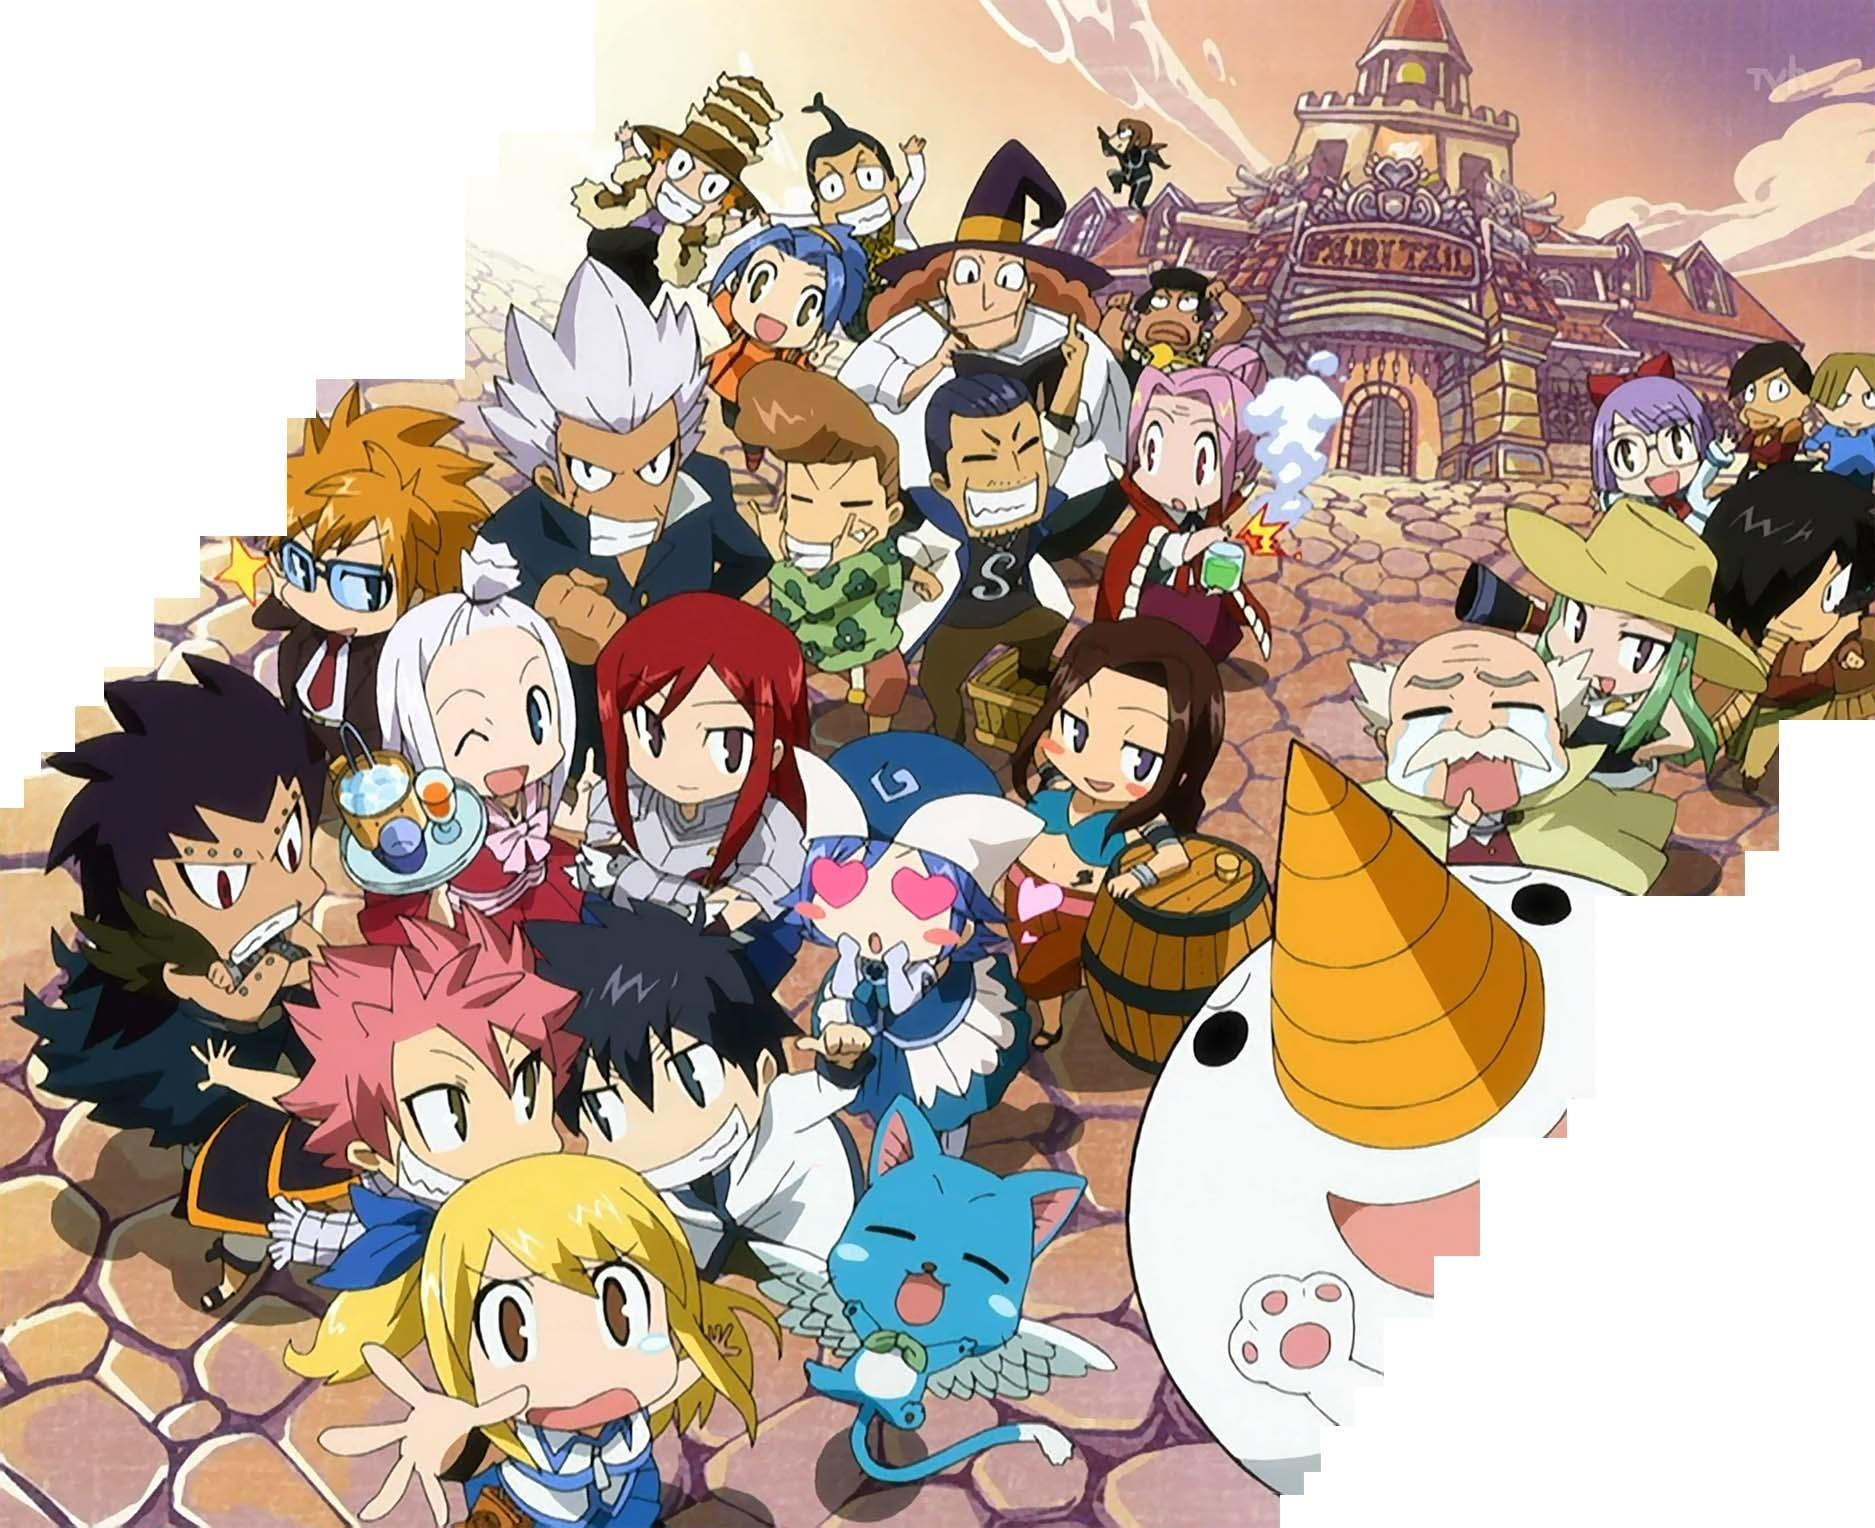 Best Of Adorable Fairy Tail Anime - Fairy Tail Wallpaper Chibi , HD Wallpaper & Backgrounds